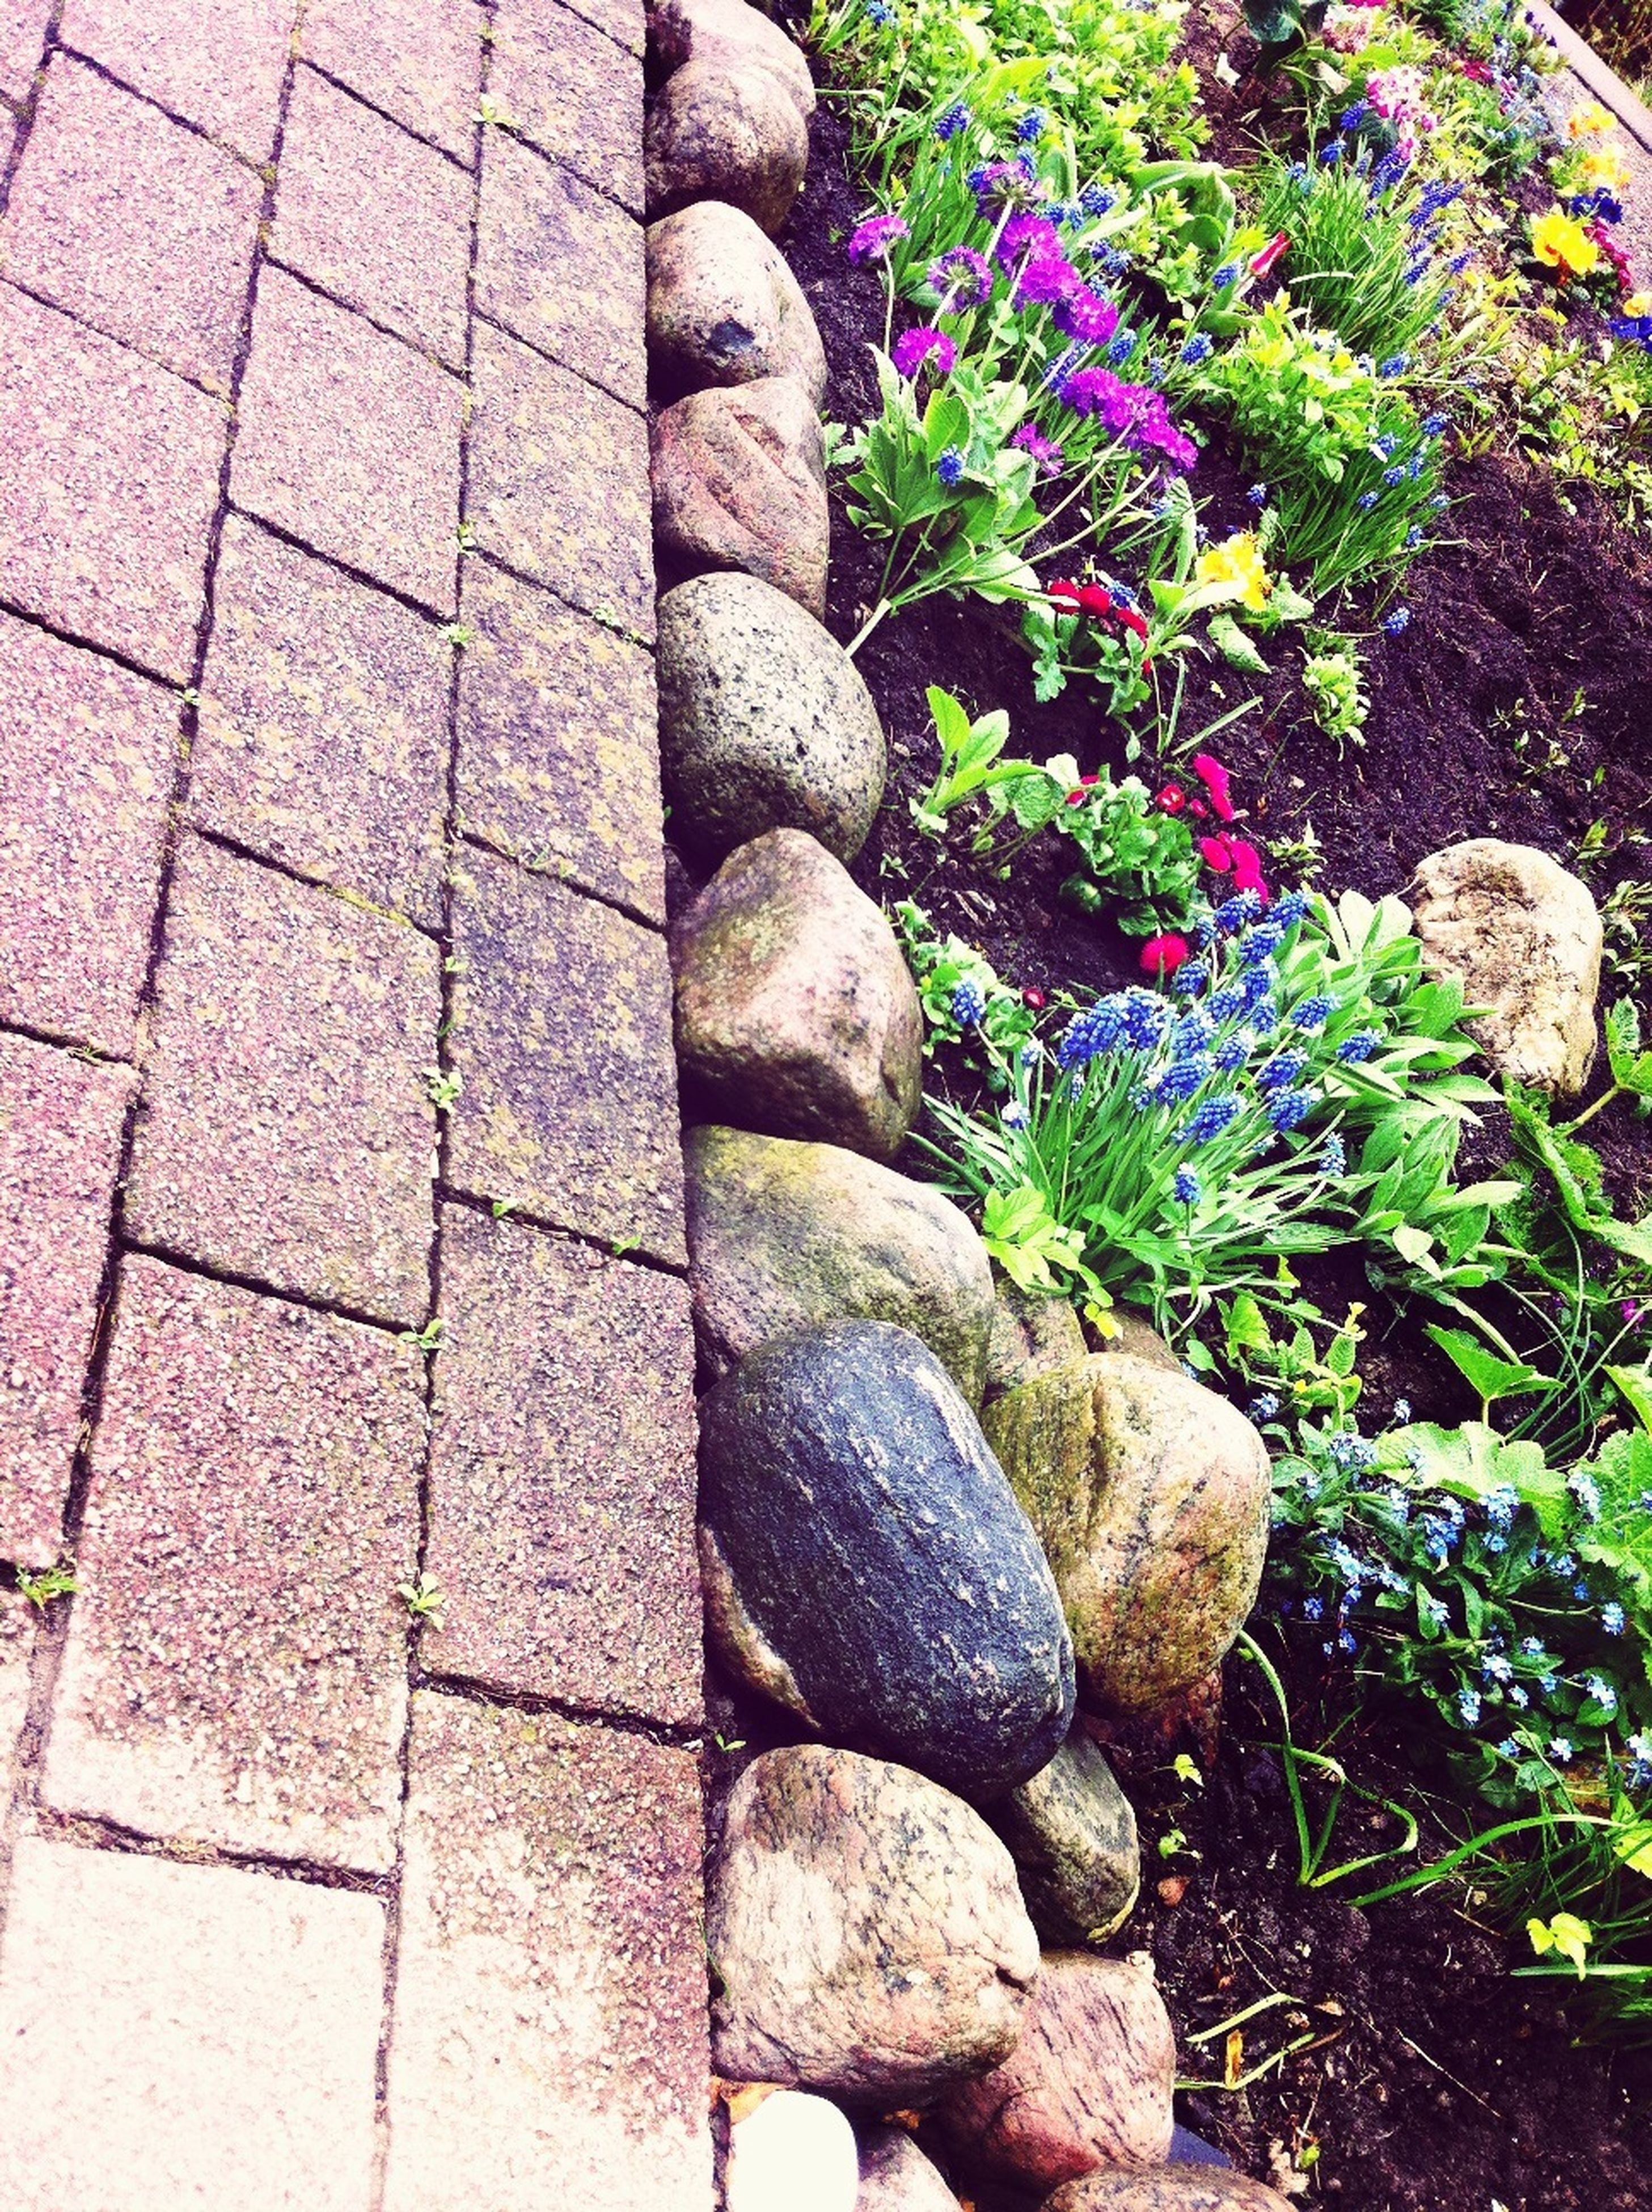 stone - object, plant, growth, stone, rock - object, nature, day, abundance, outdoors, high angle view, flower, no people, stone material, beauty in nature, stone wall, stack, pebble, large group of objects, textured, green color